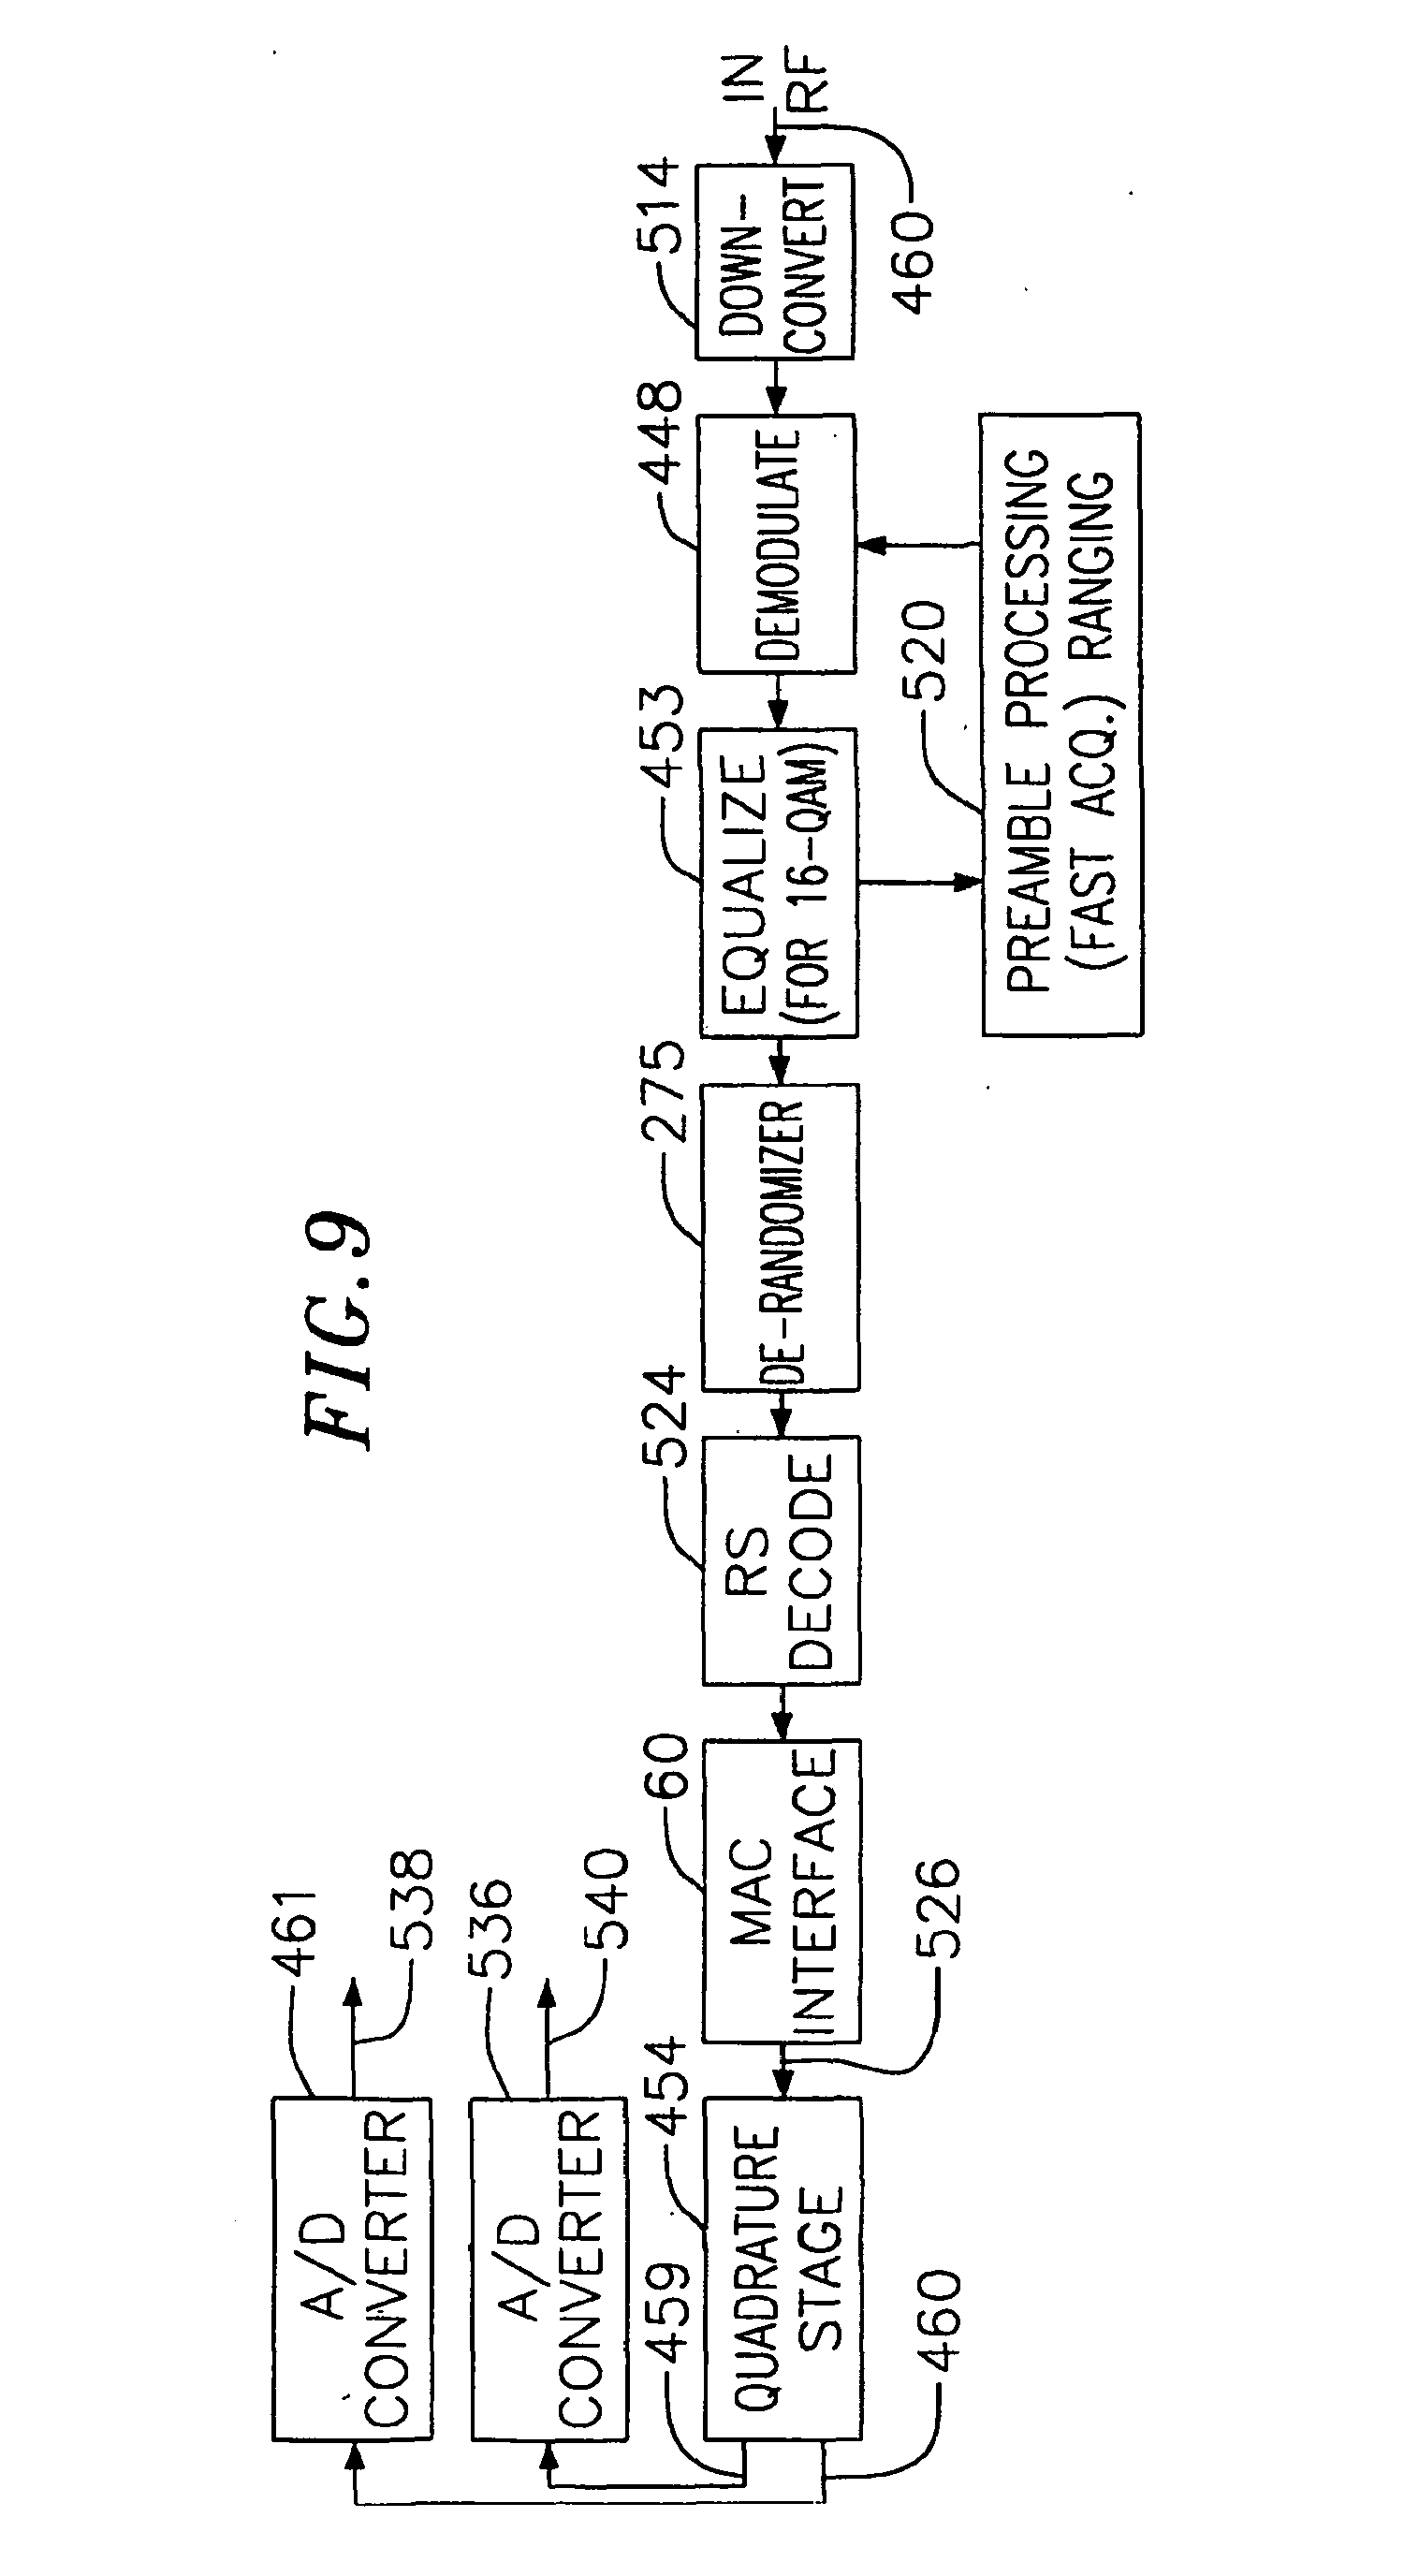 CABLE MODEM SYSTEM - Patent 1125398